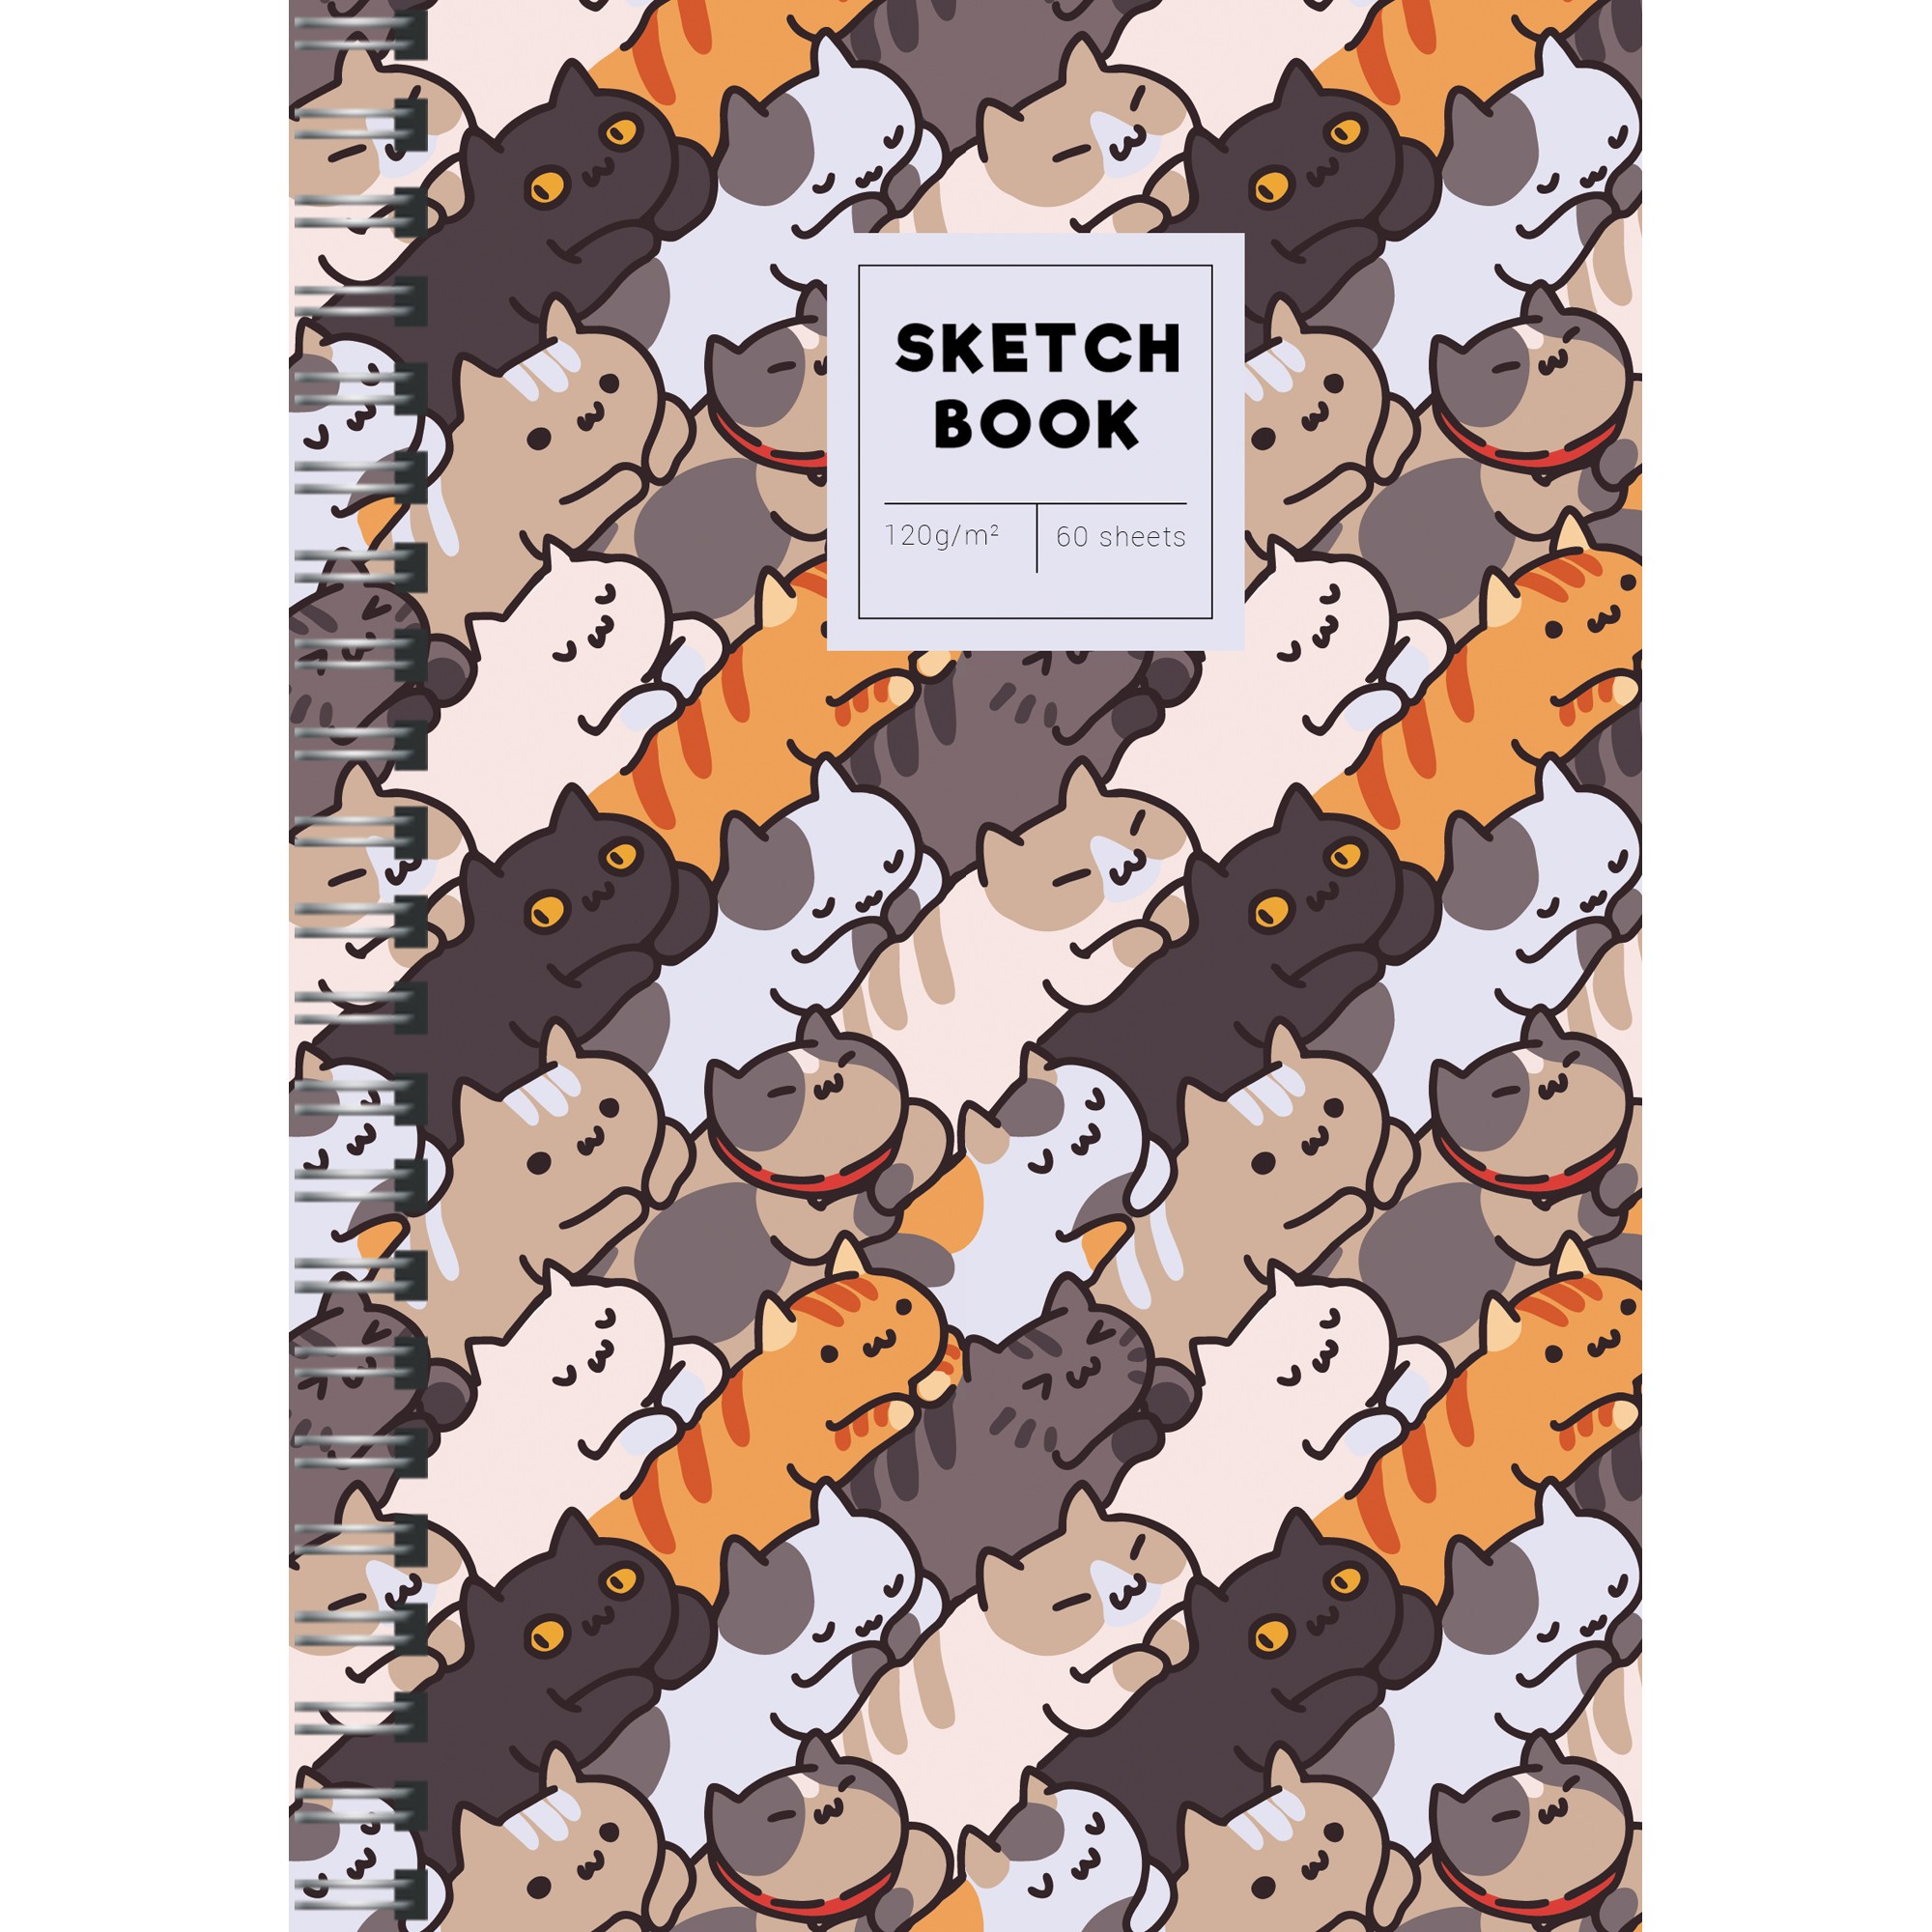 Скетчбук А5 60л тв спир SKETCHBOOK. On and on 3 120гр/м2